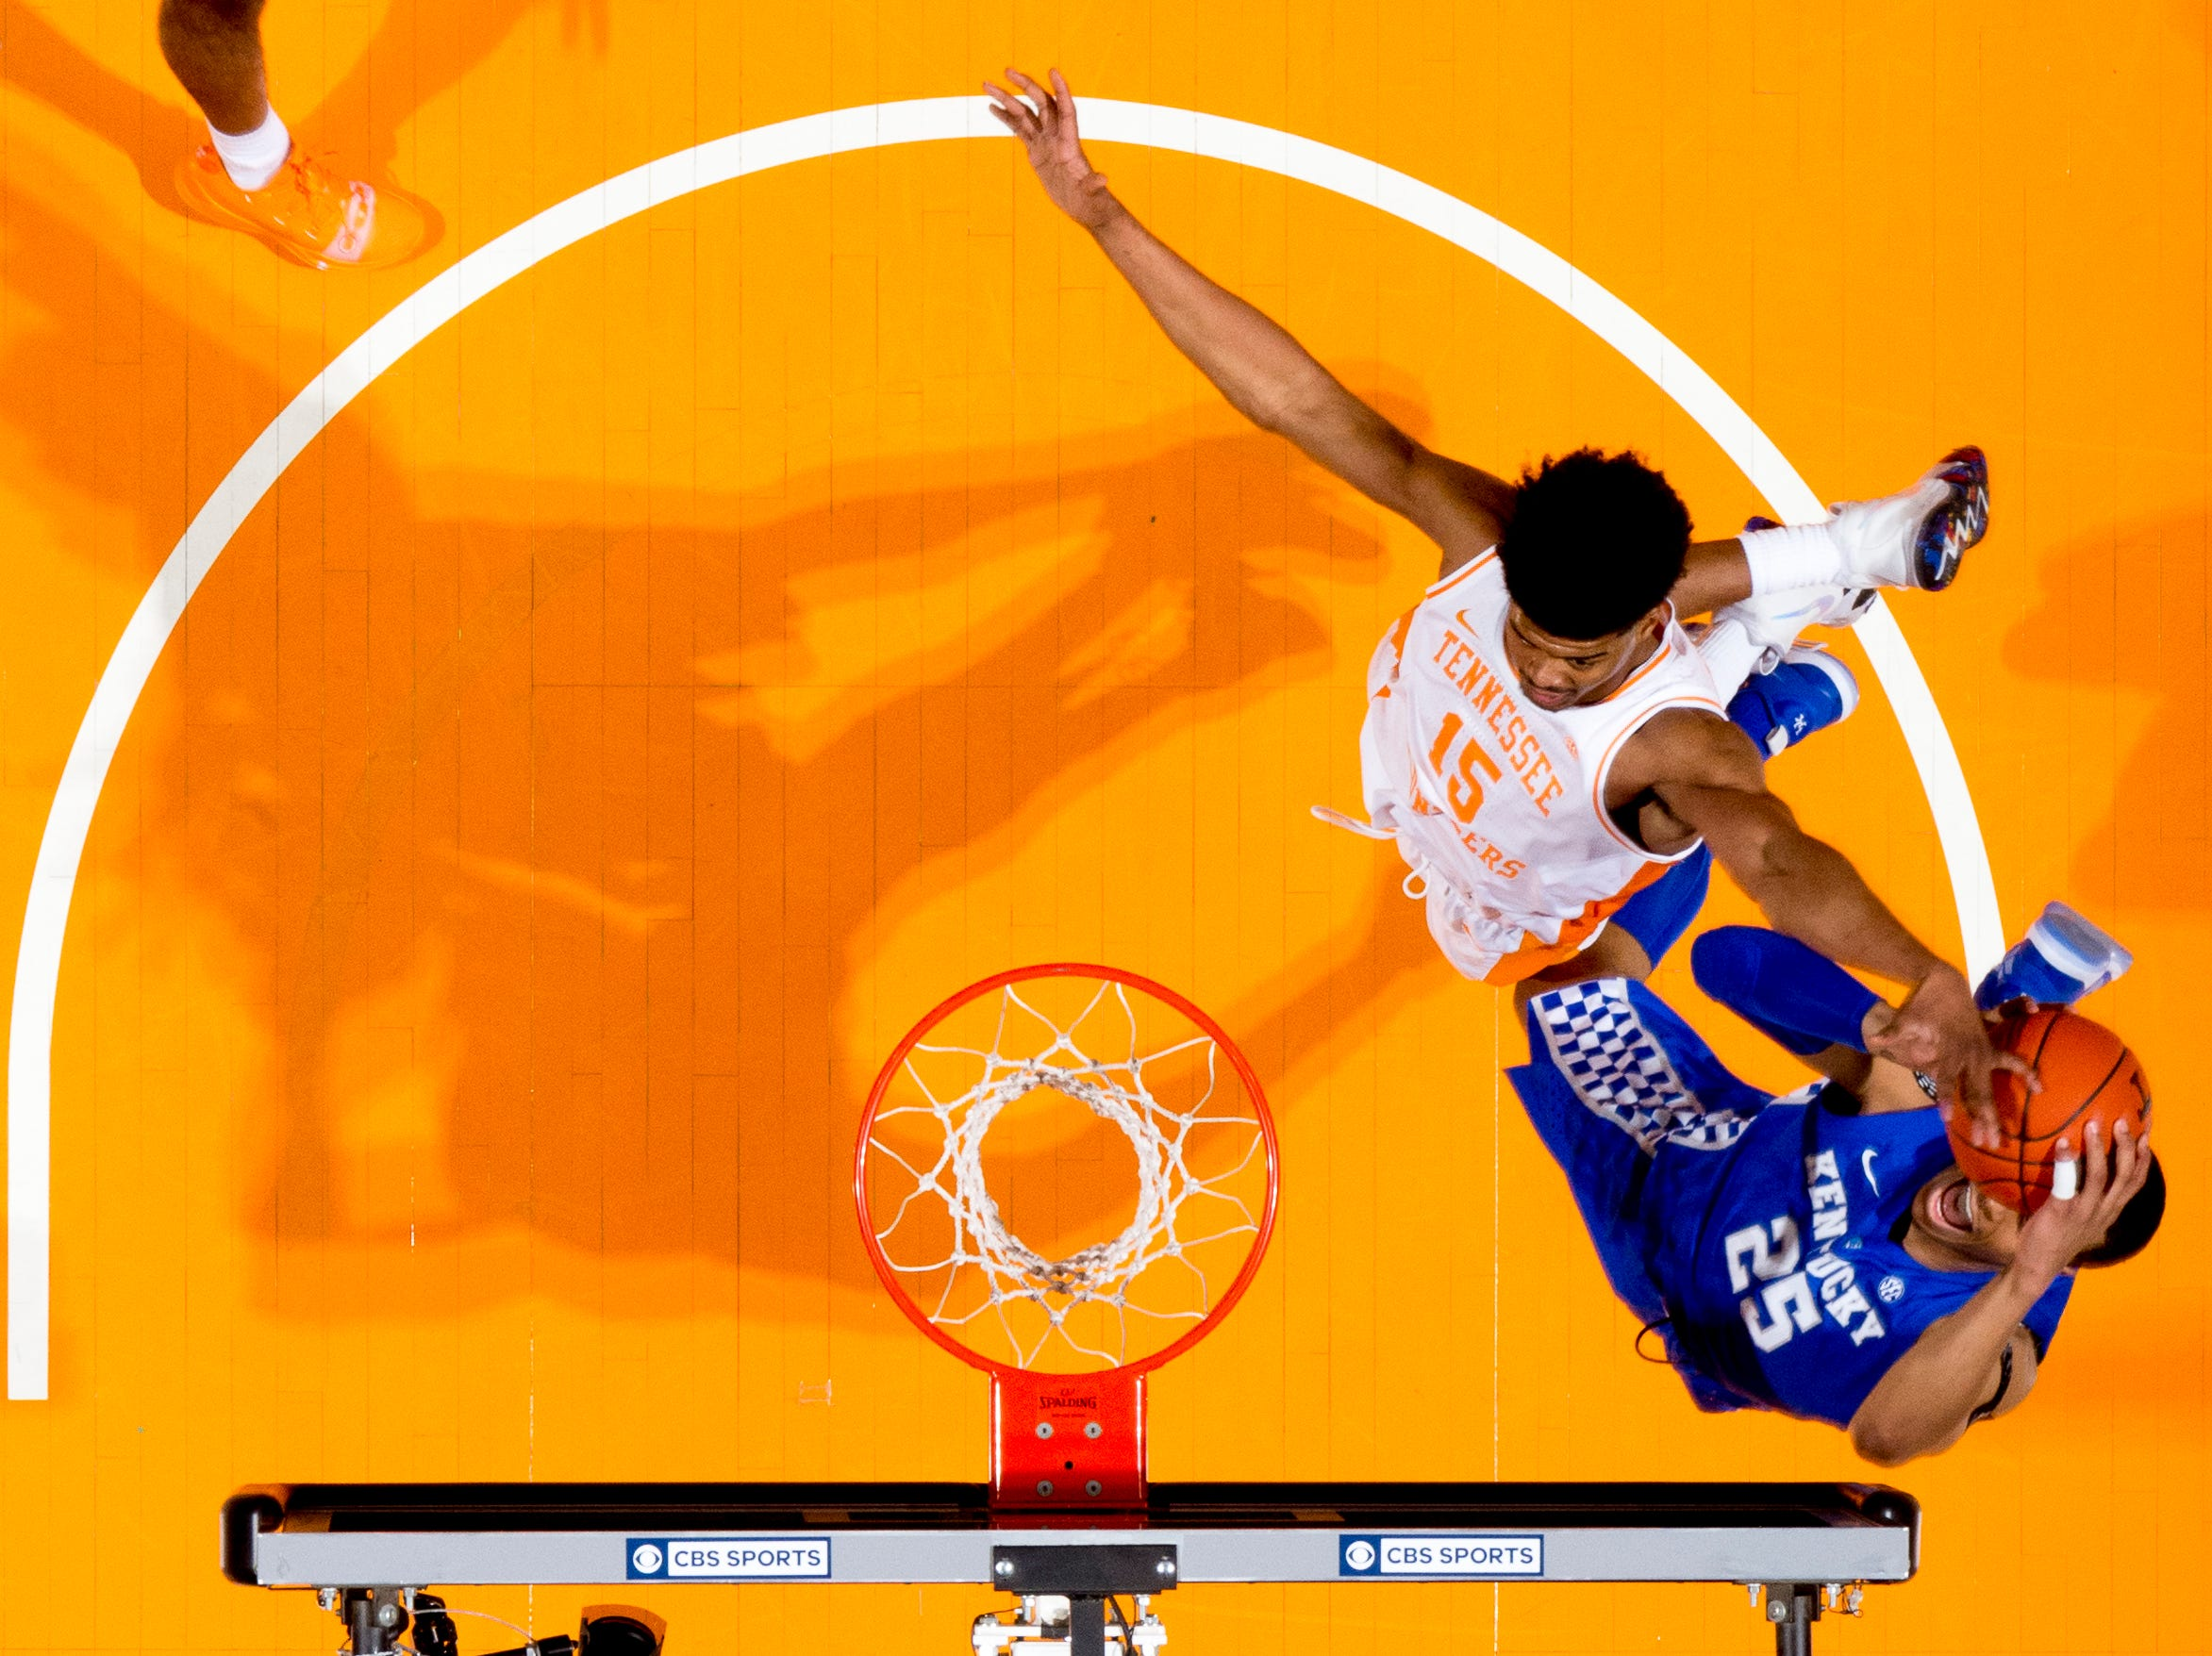 Tennessee forward Derrick Walker (15) blocks a shot by Kentucky PJ Washington (25) during a game between Tennessee and Kentucky at Thompson-Boling Arena in Knoxville, Tennessee on Saturday, March 2, 2019.